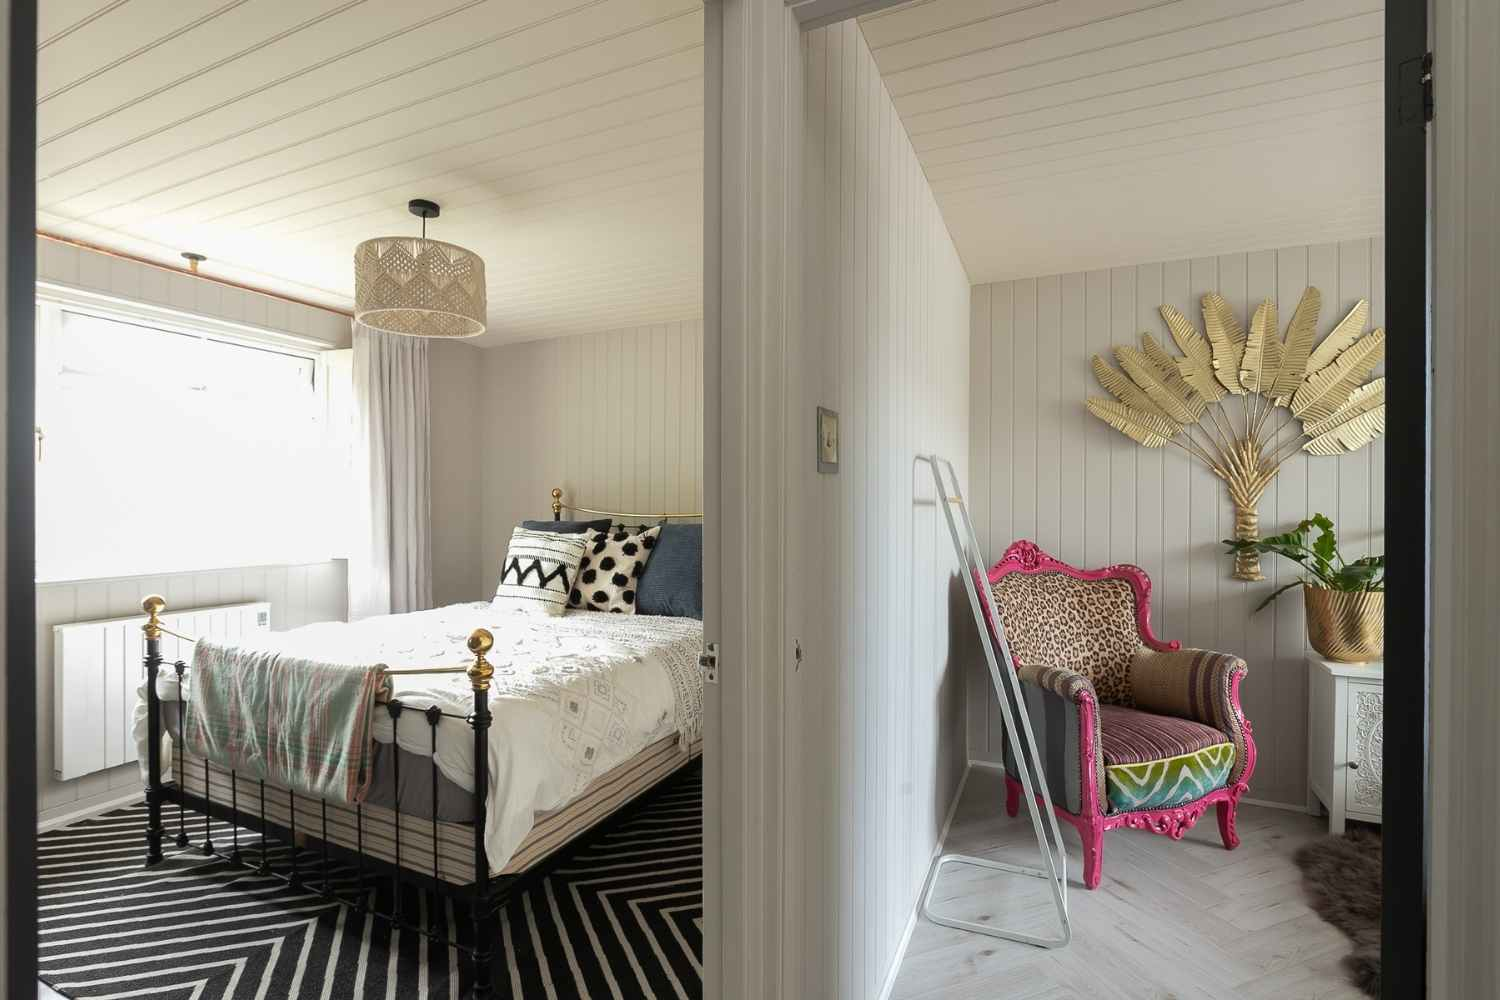 Two of the comfortable bedrooms